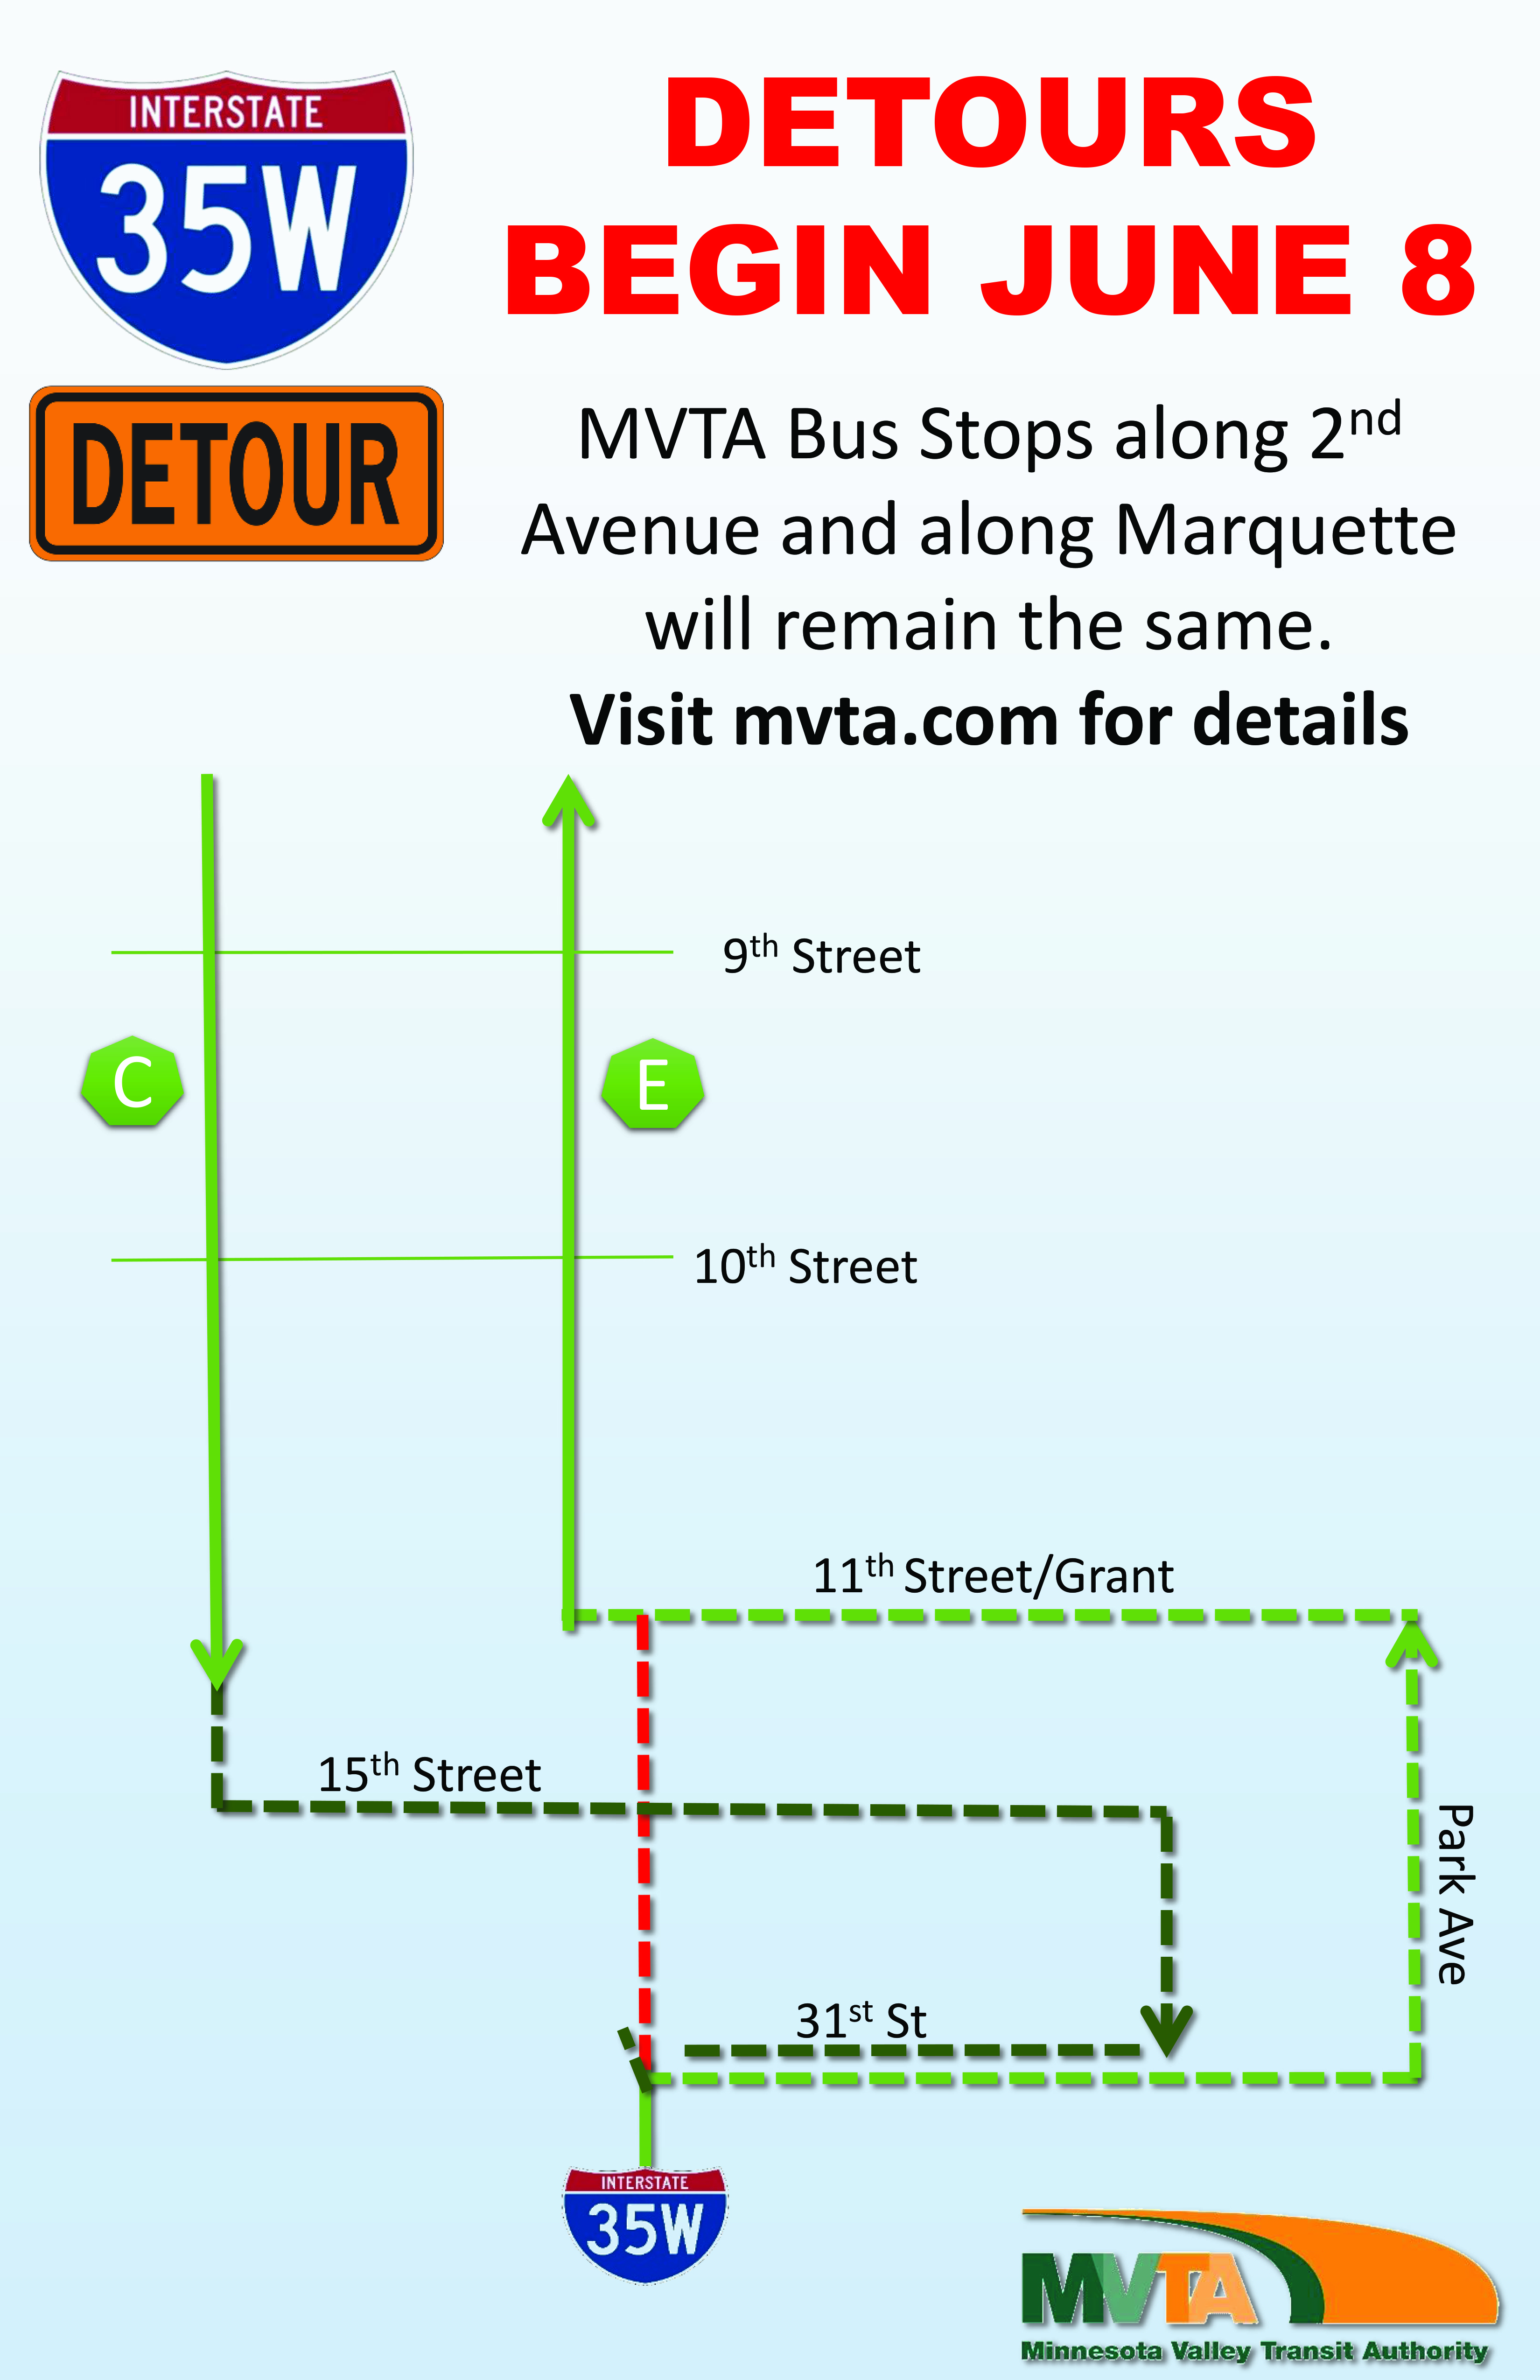 MVTA express buses using 35W will be detoured on local streets beginning the evening of June 8. Downtown stops will continued to be served.